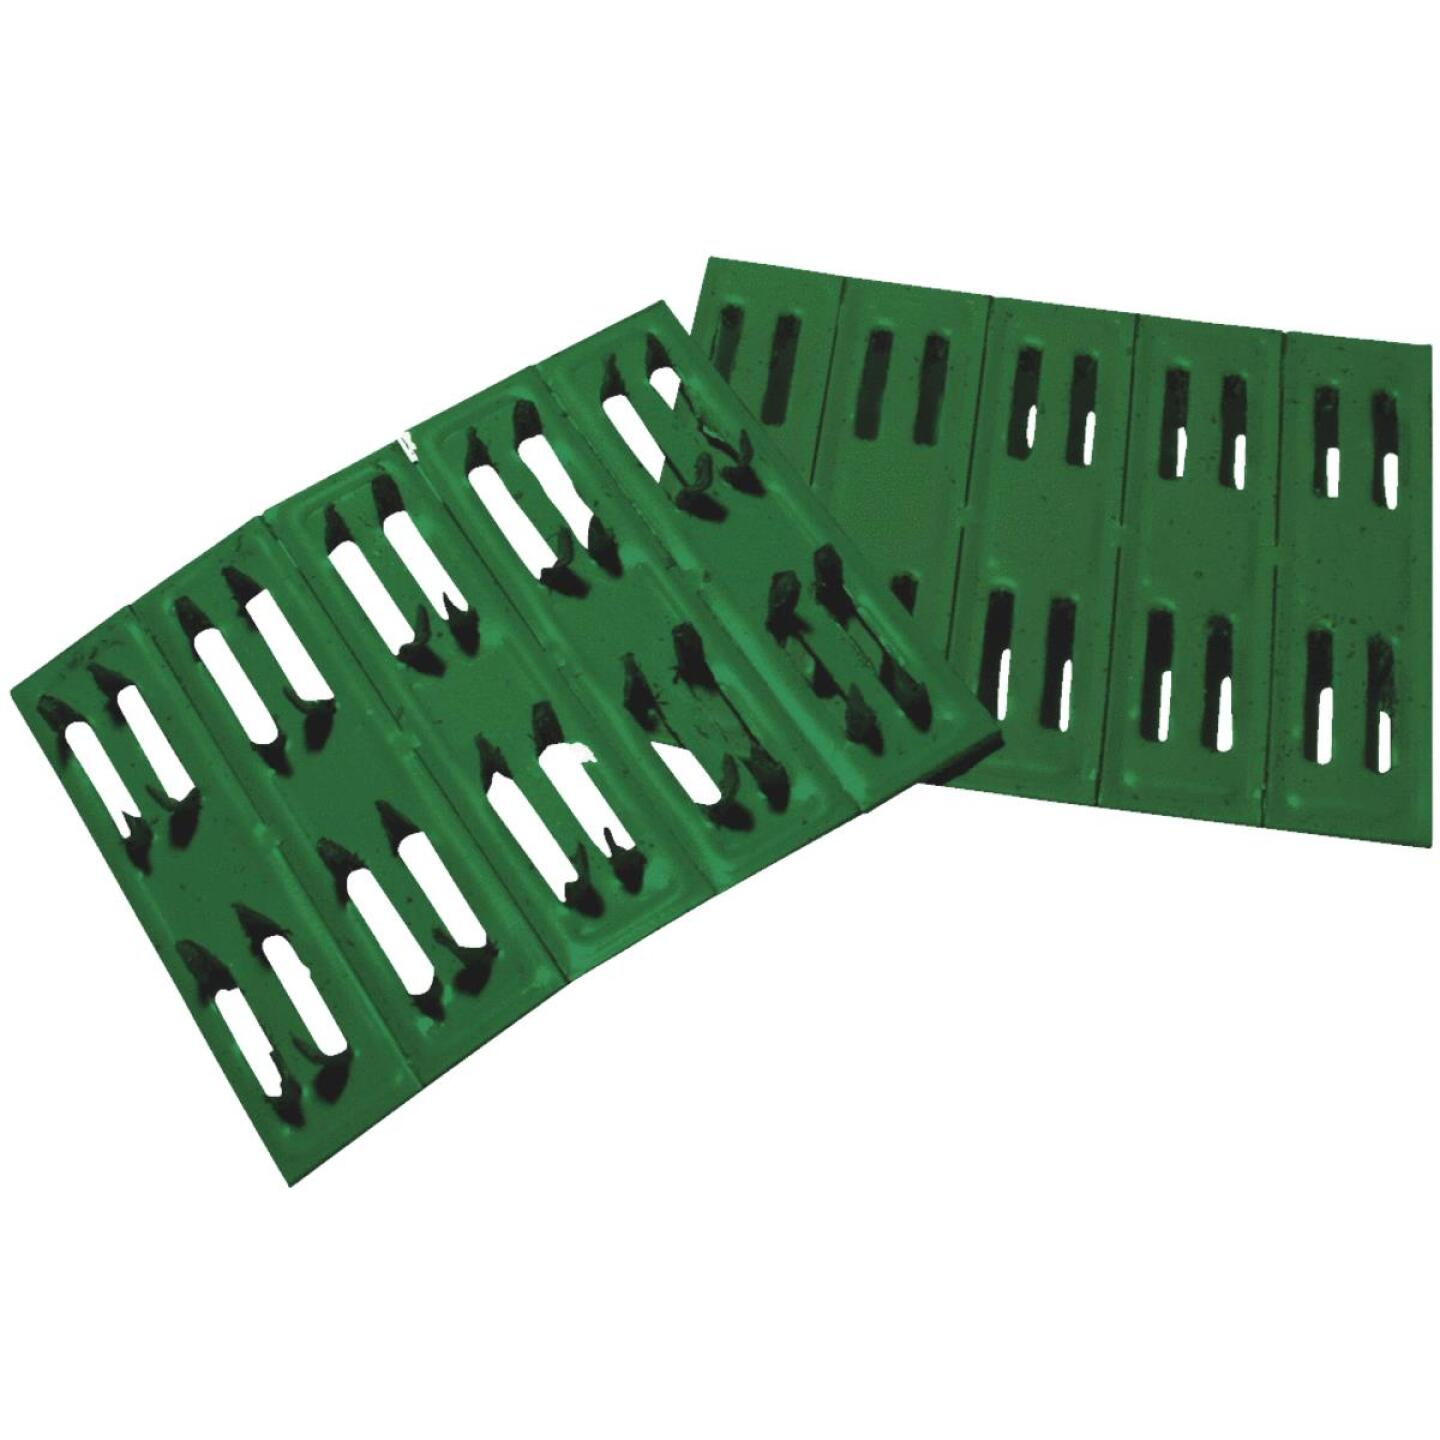 Coolaroo Green Plastic Sun Screen Wood Fasteners (50-Pack) Image 1